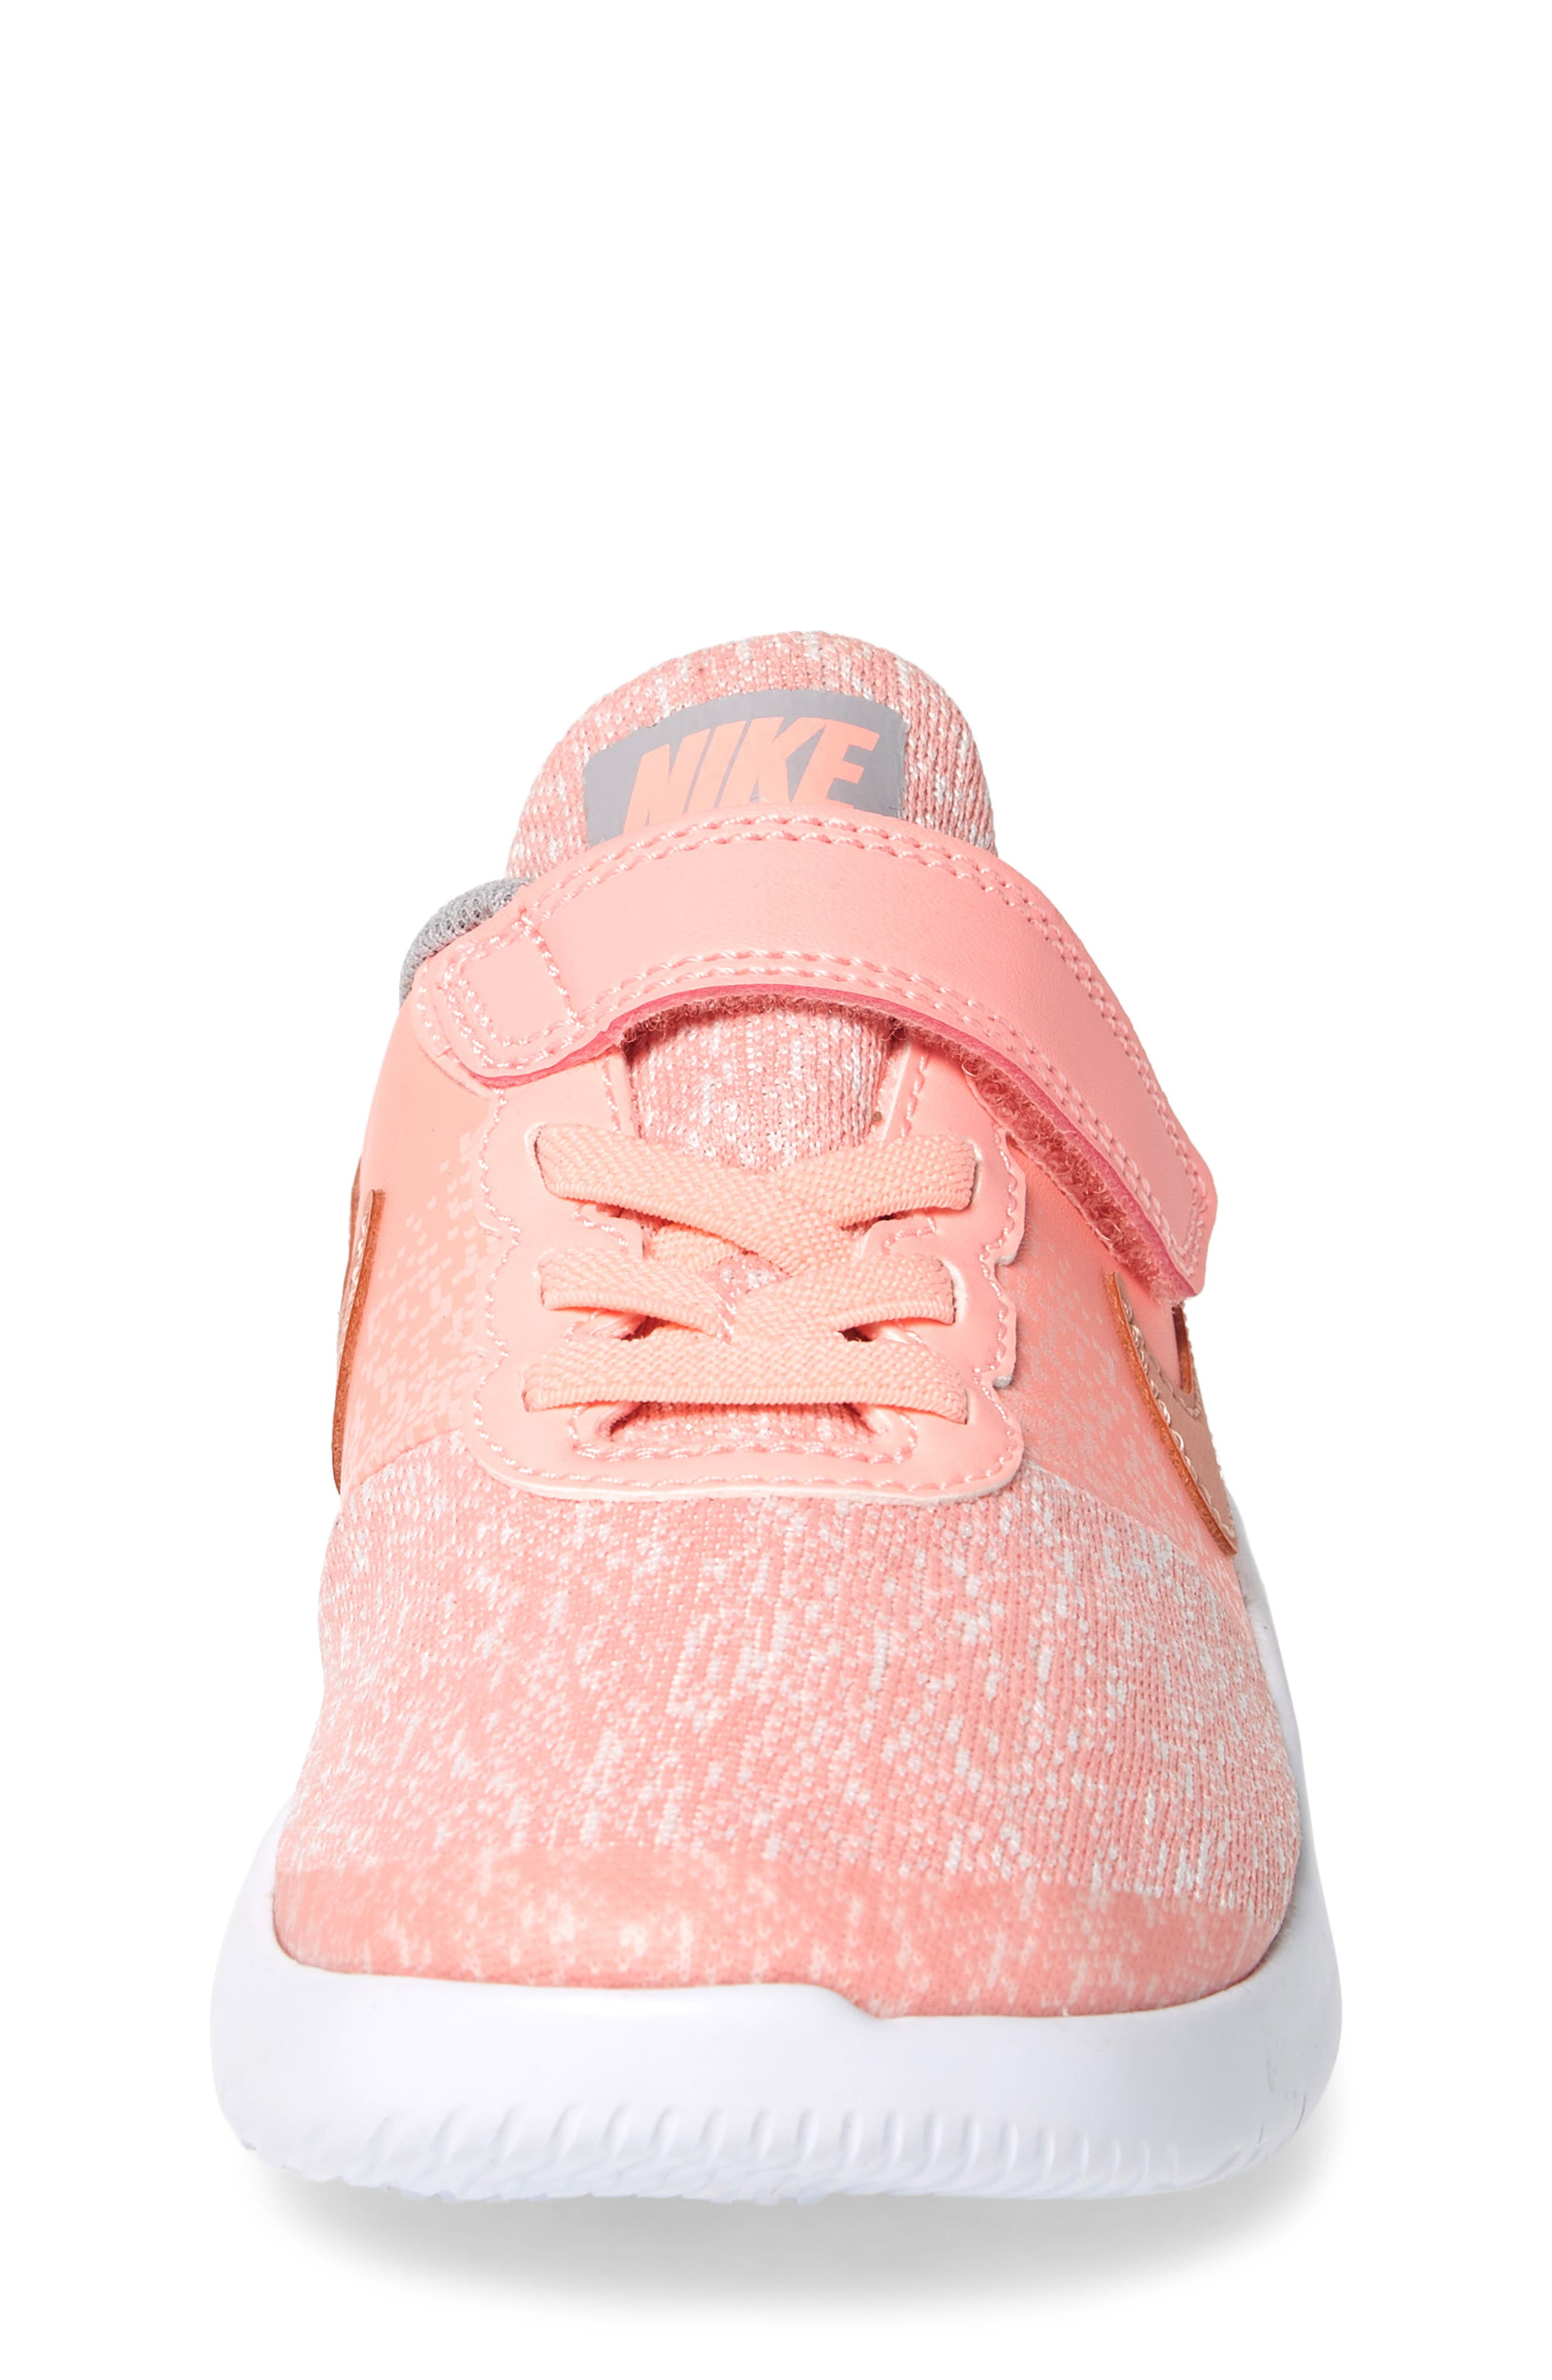 Flex Contact Running Shoe,                             Alternate thumbnail 4, color,                             Rose Gold/ Storm Pink